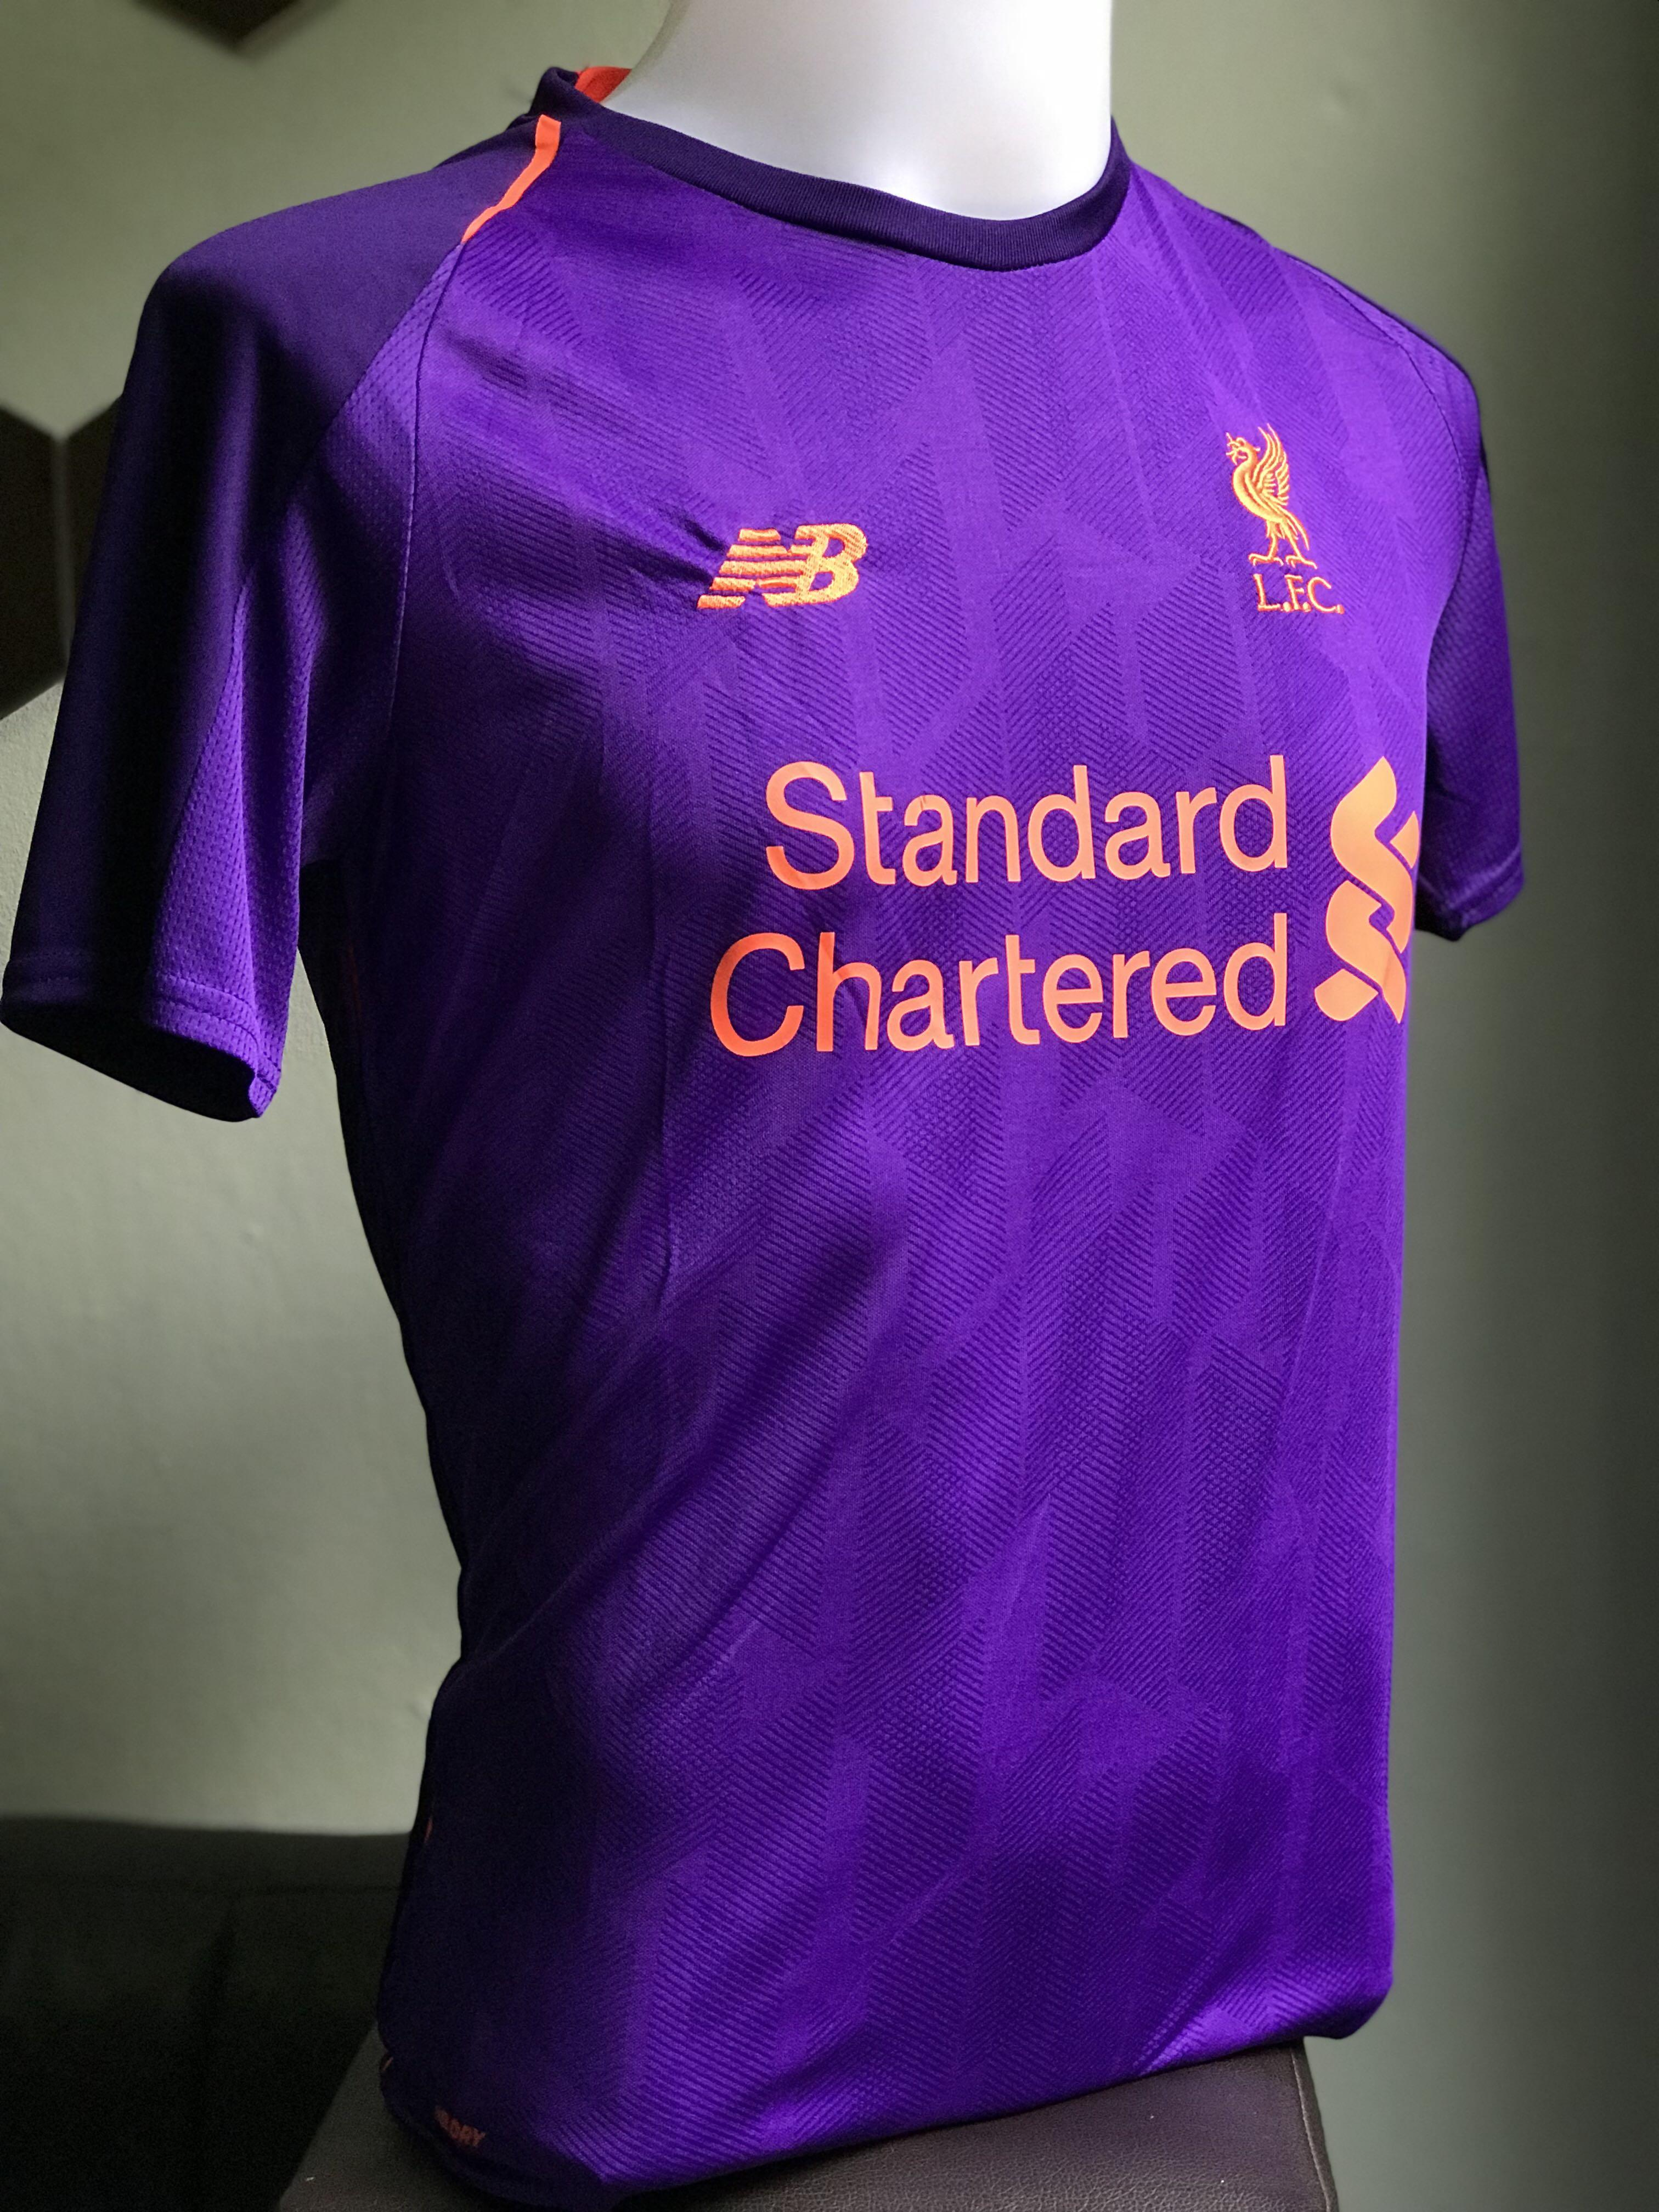 check out 11dfc 87c66 Liverpool FC Jersey 2018/19 away kits, Sports, Sports ...